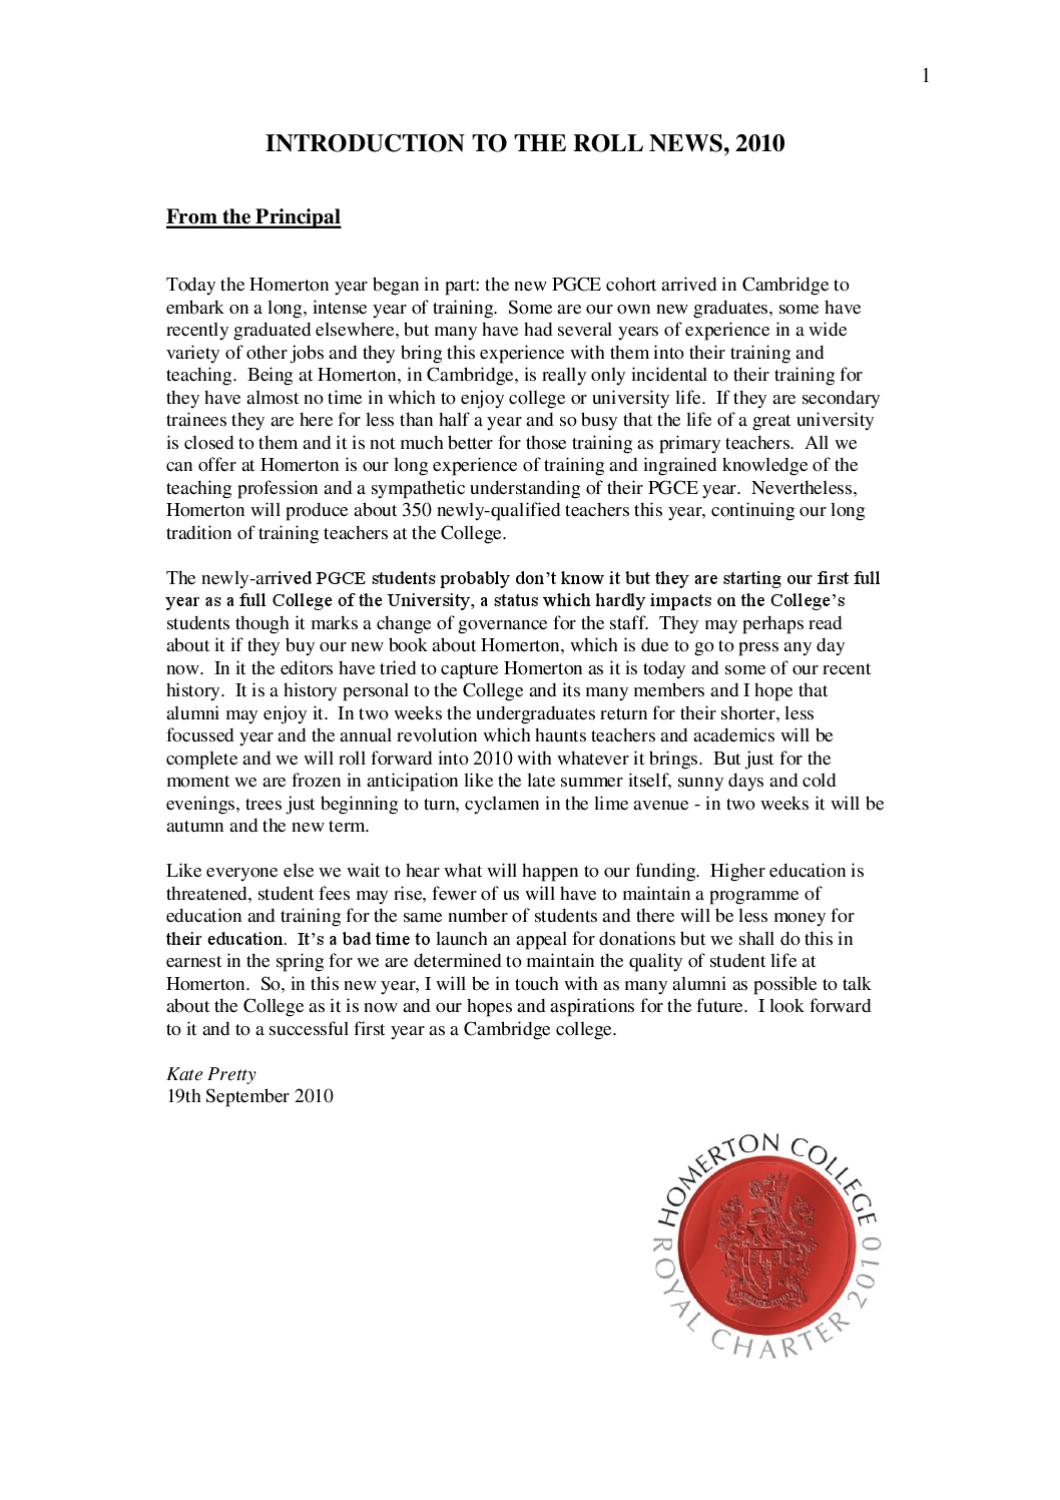 theory of multiple intelligences essay 150 words essay view essay theory of multiple intelligences essay 3 edits from eng